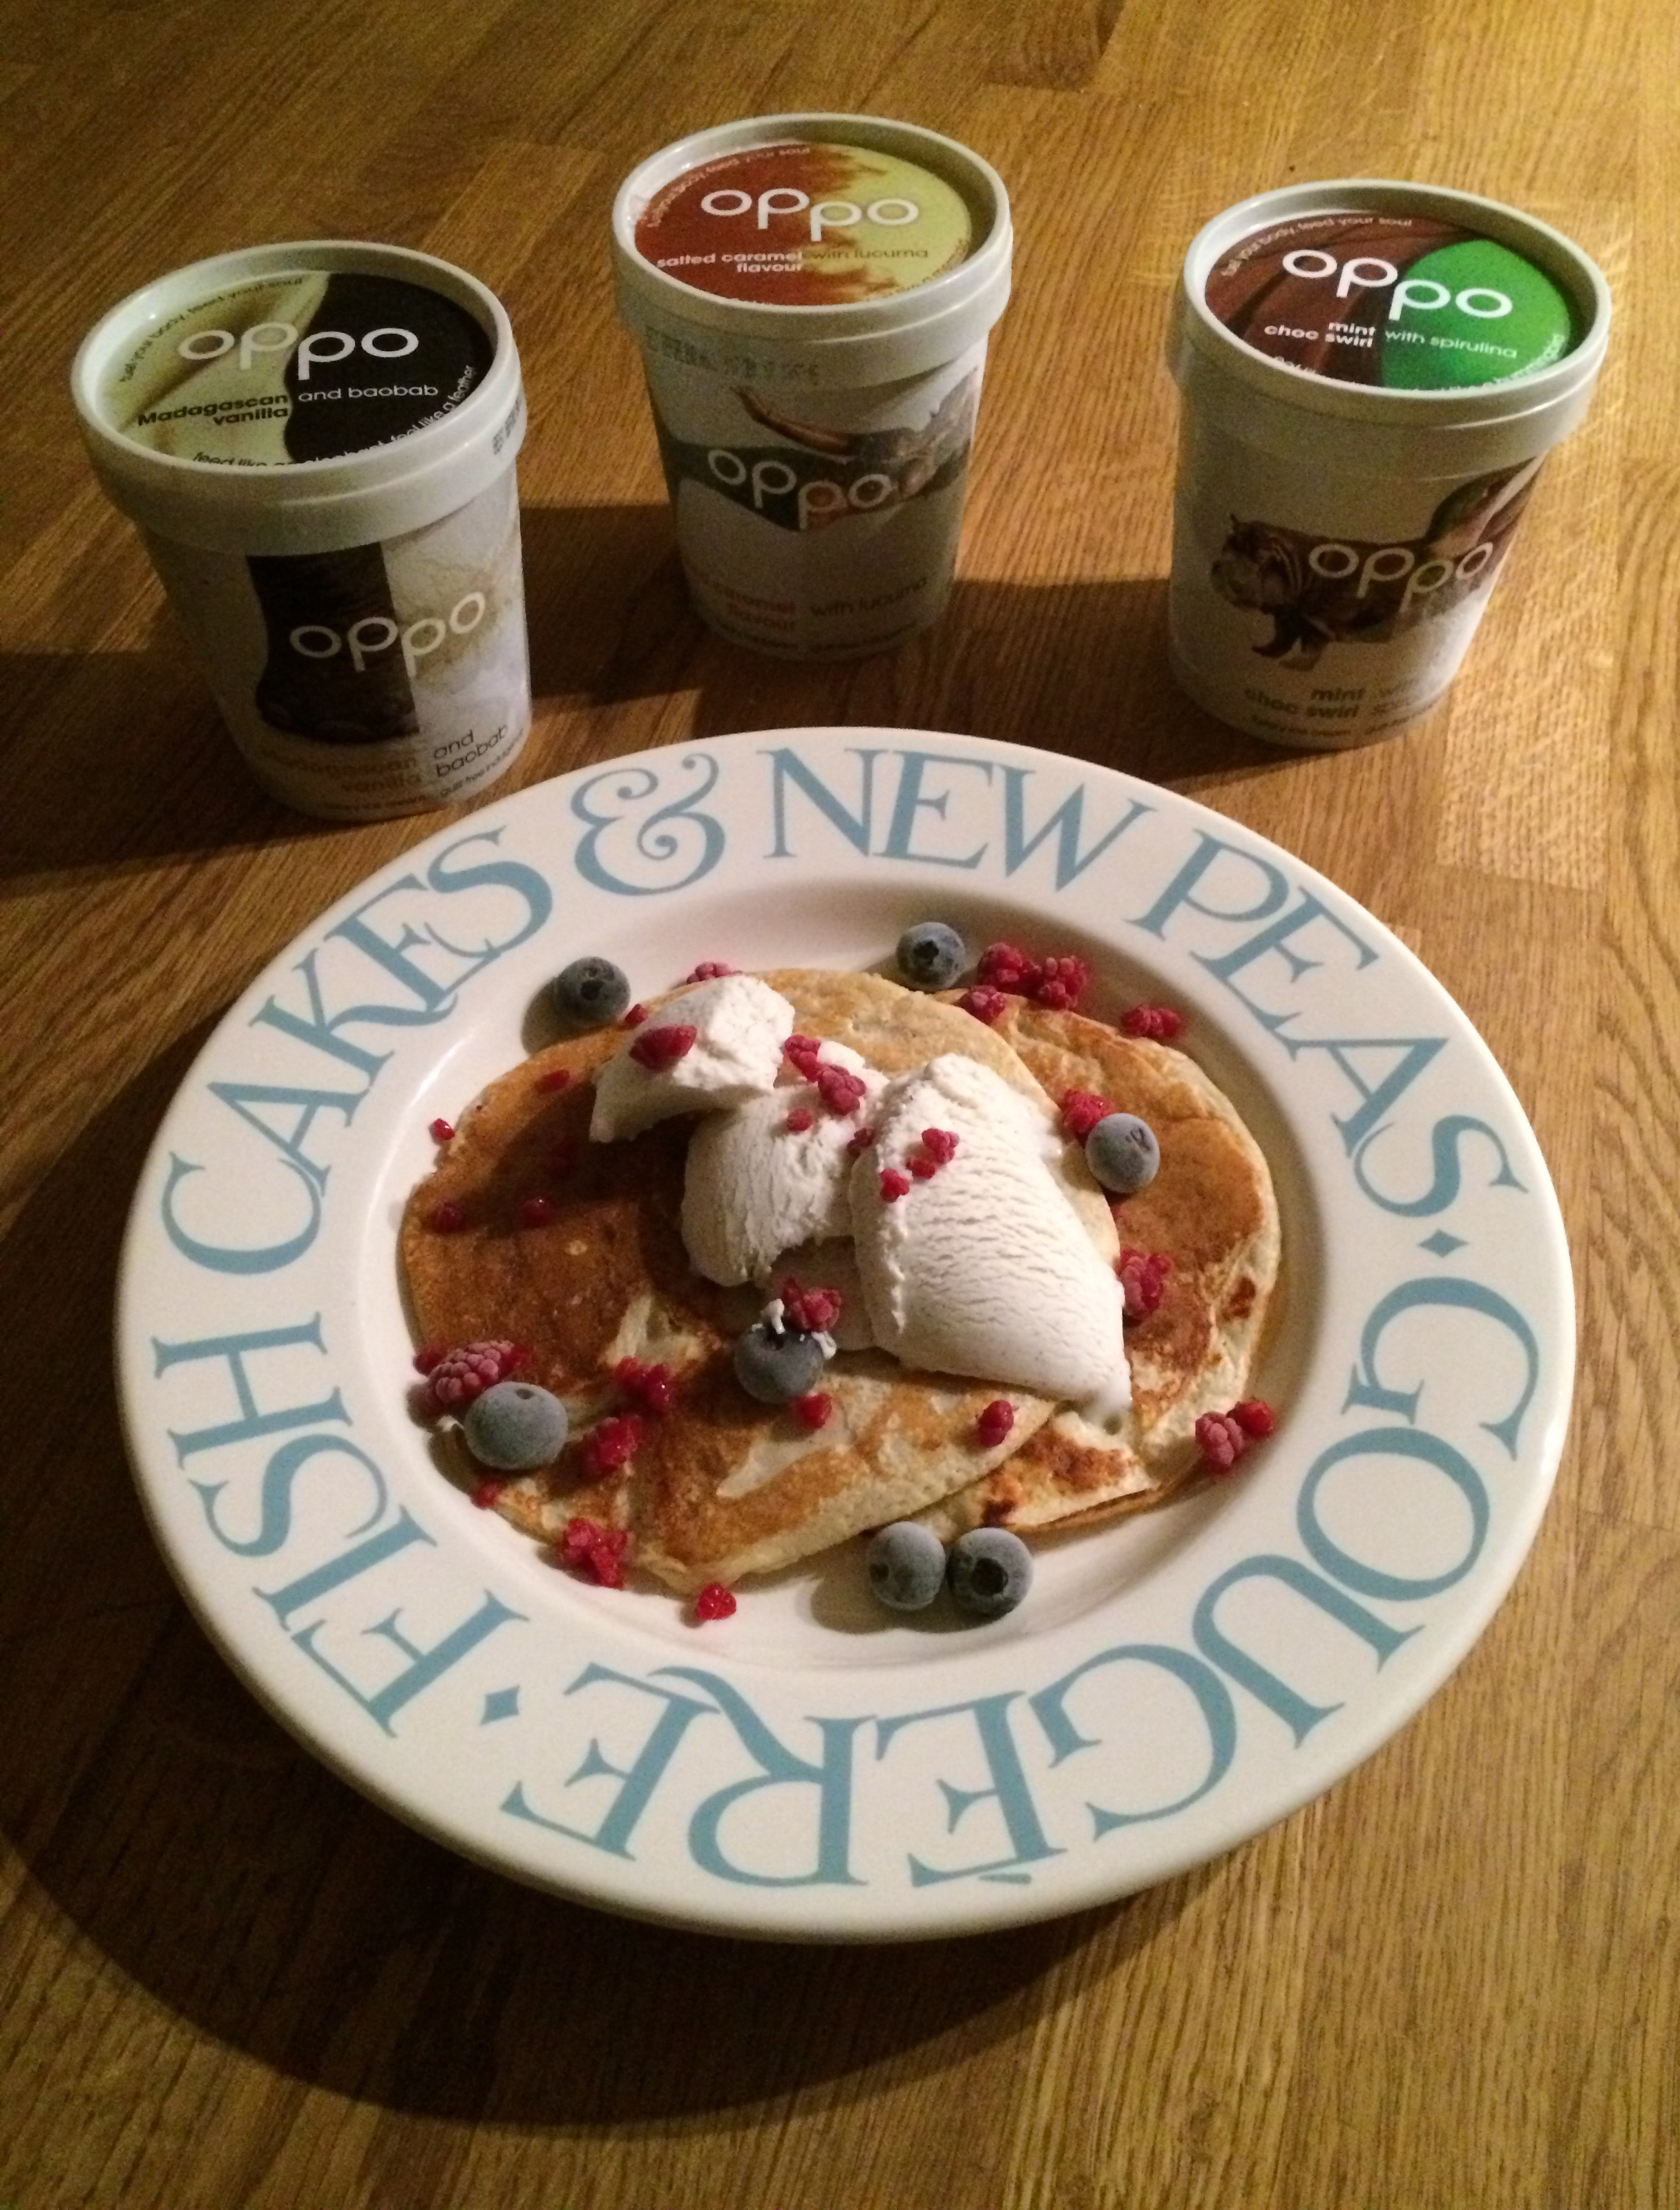 Protein pancakes topped with frozen raspberries, frozen blueberries and Madagascan vanilla and baobab Oppo ice-cream